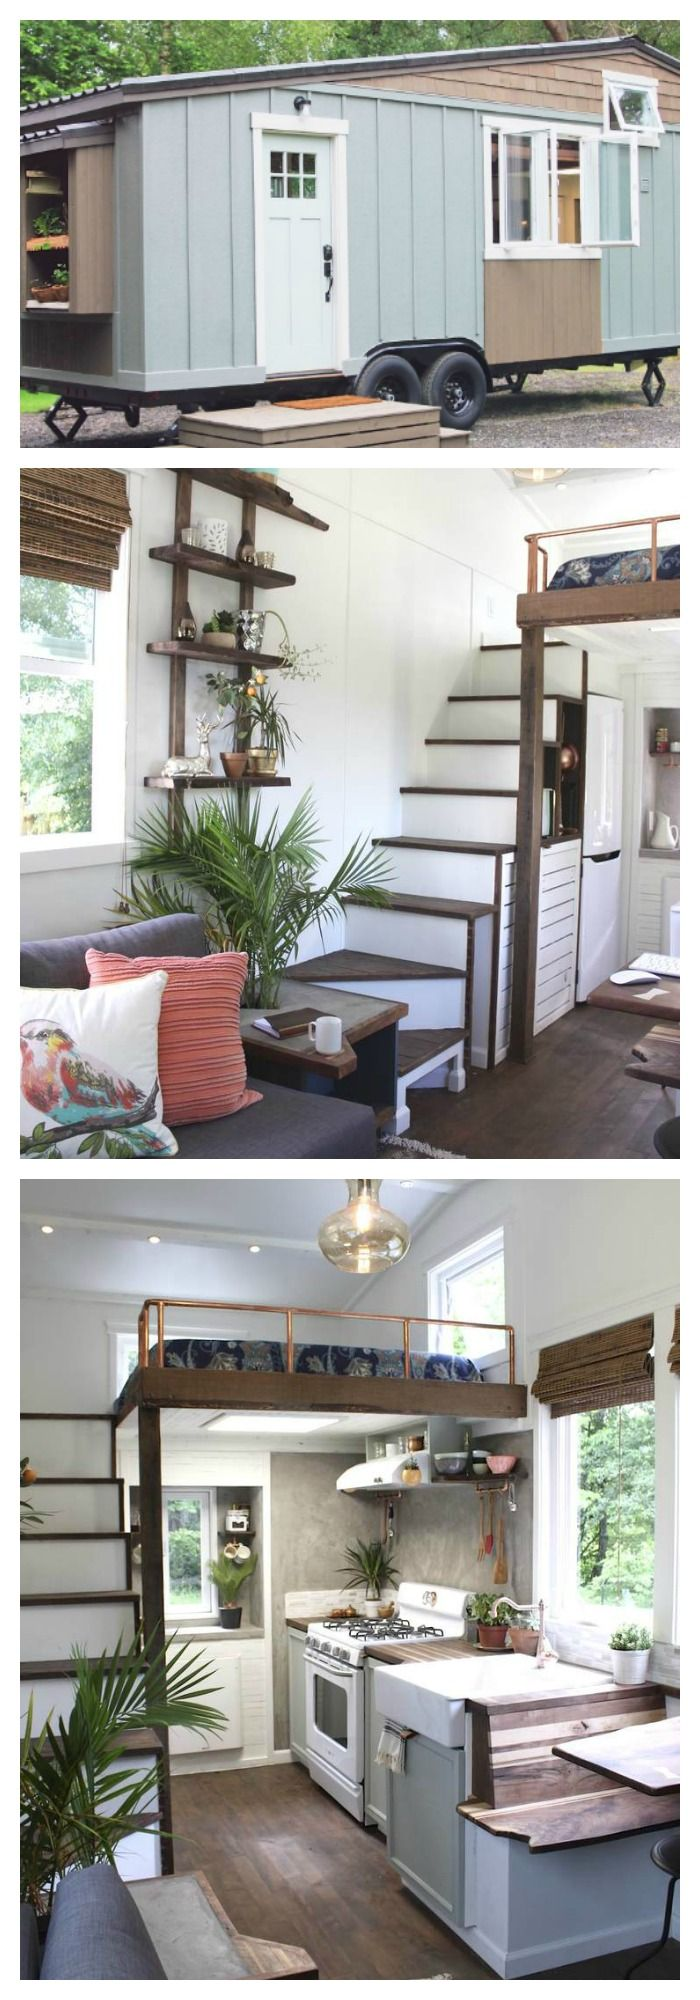 Interior design ideas for very small homes - Peek Inside The Cutest Little 250 Square Foot Mobile Farmhouse The Lofttiny